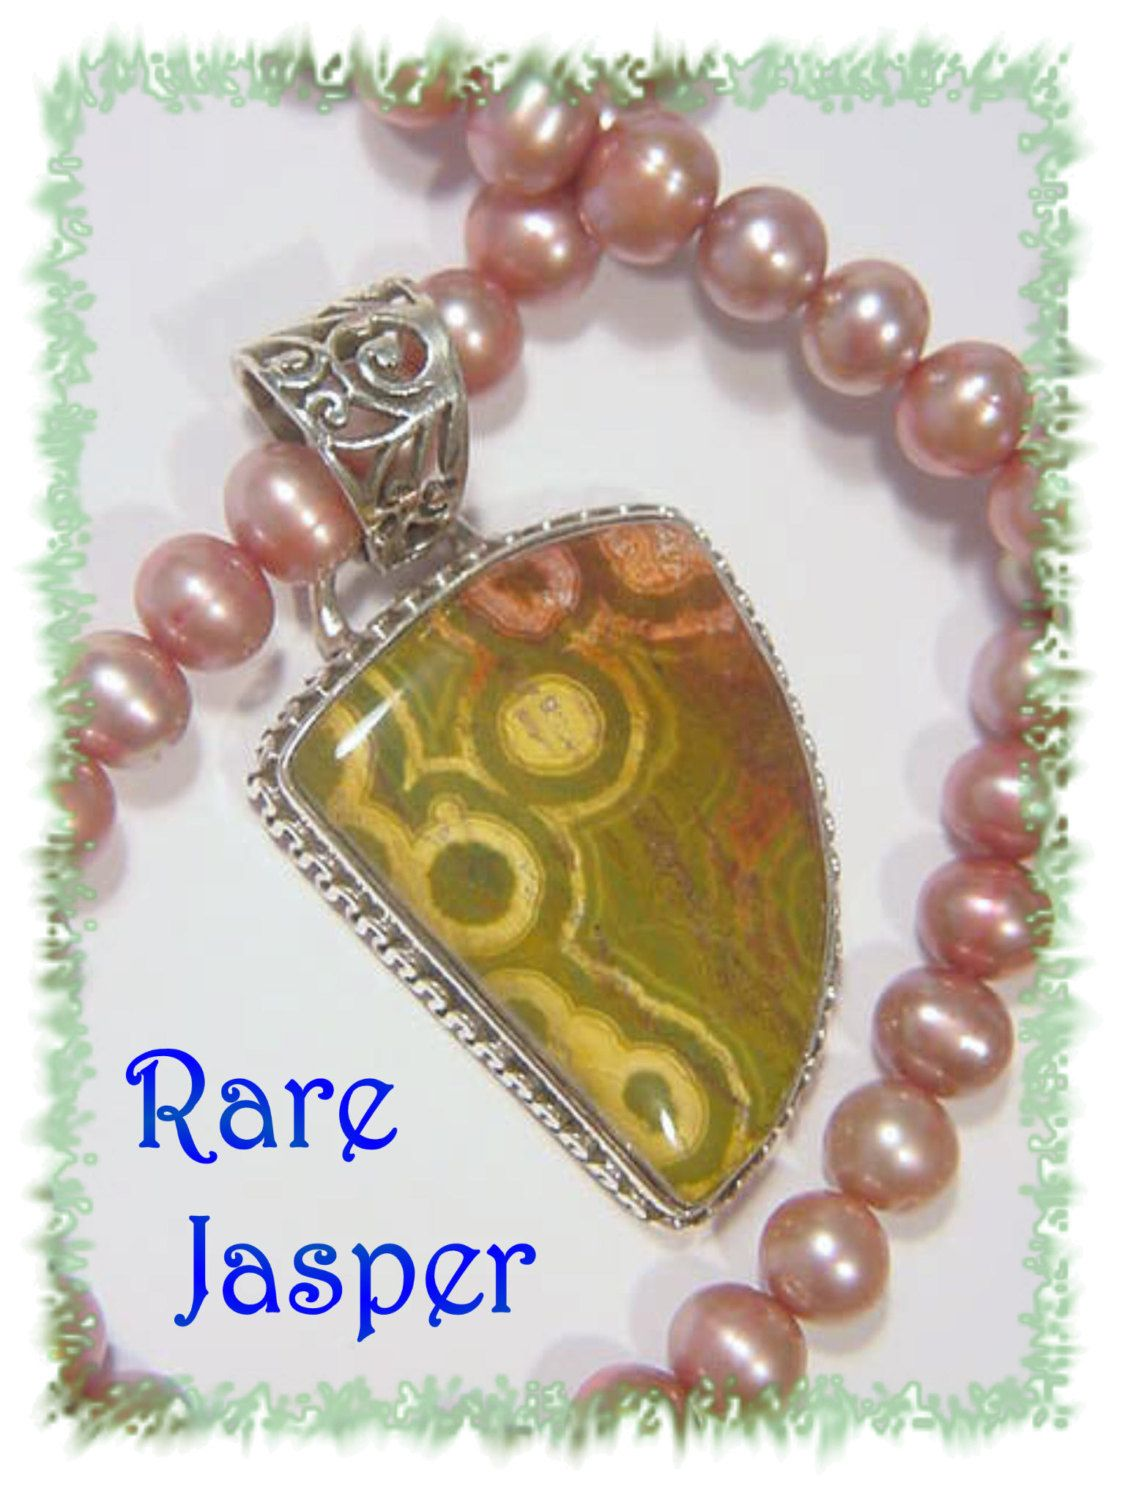 Ocean Jasper - Rare Pink & Green Circle Sterling Silver Artisan Pendant - Iridescent Pink Pearl Necklace - The Perfect Gift - FREE SHIPPING